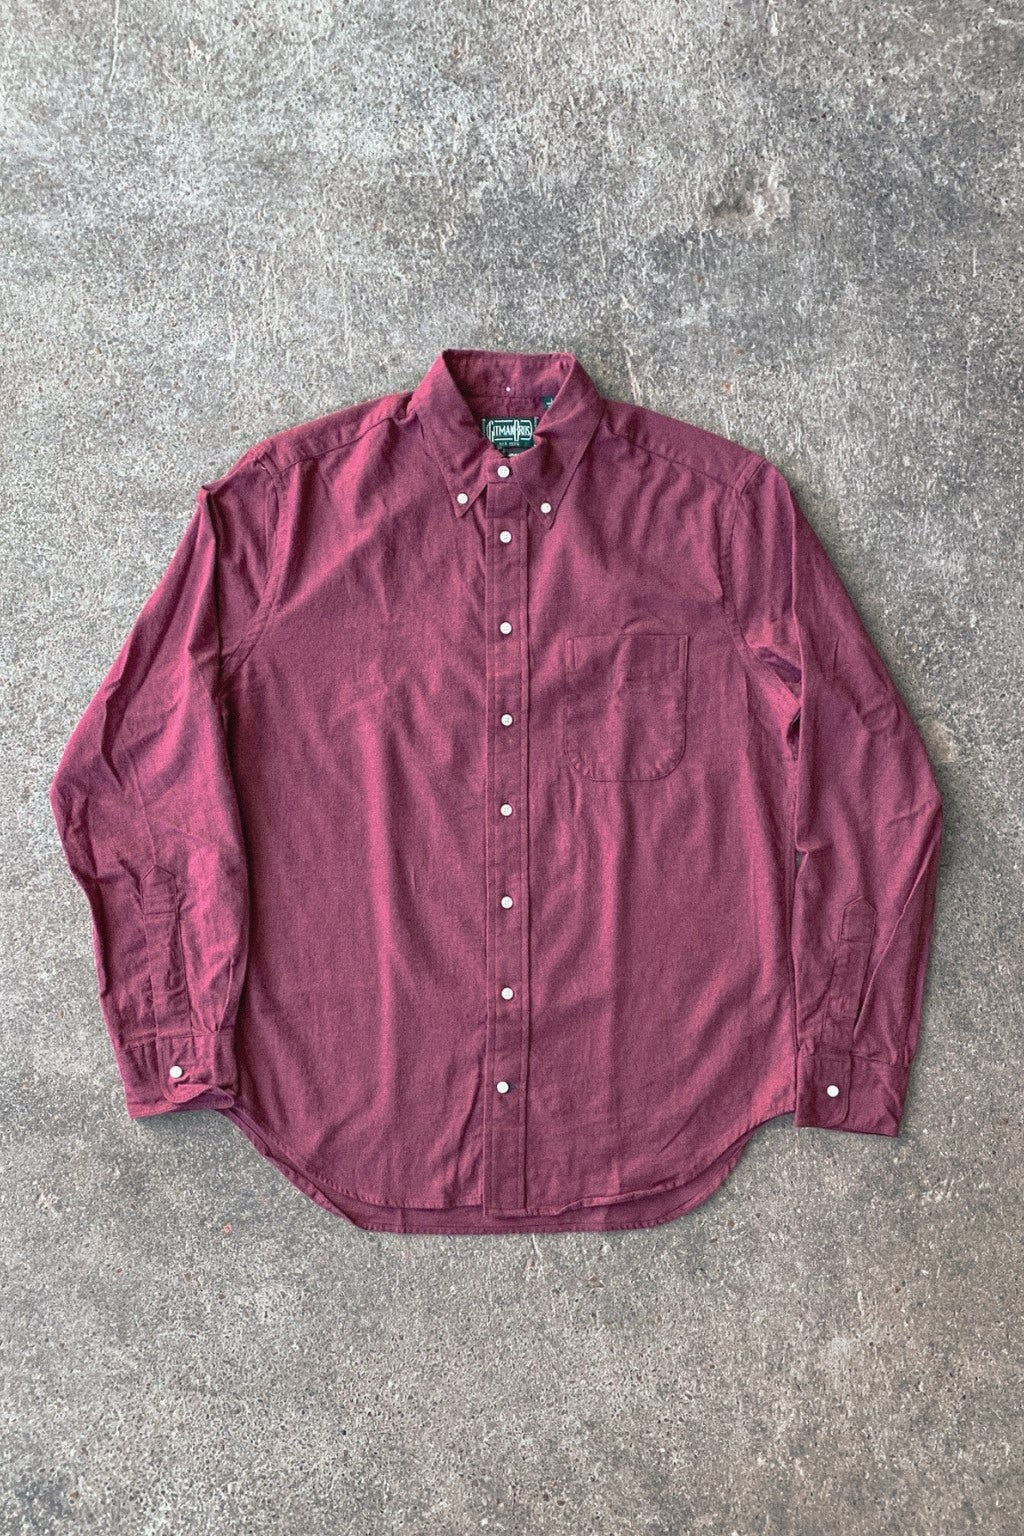 Gitman Bros. Vintage Button Down Shirt Burgundy Flannel